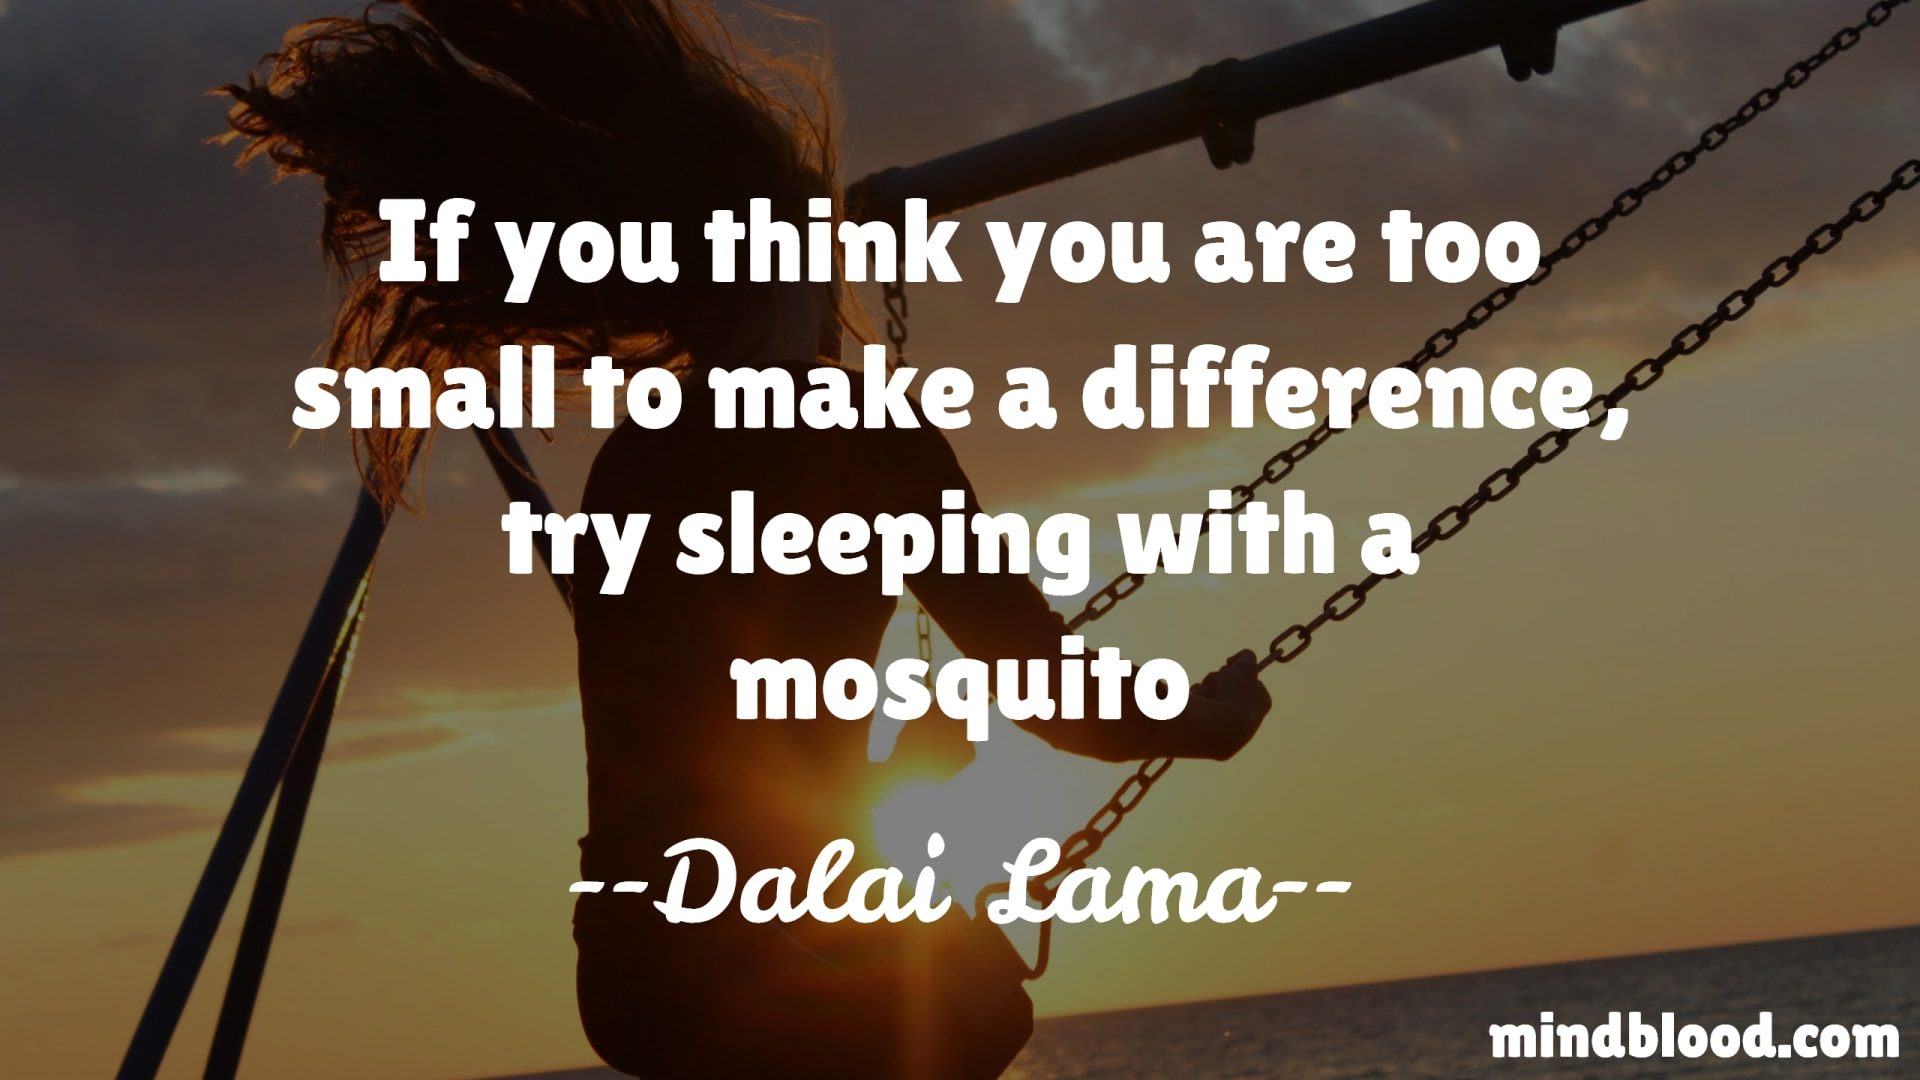 If you think you are too small to make a difference, try sleeping with a mosquito - Dalai Lama